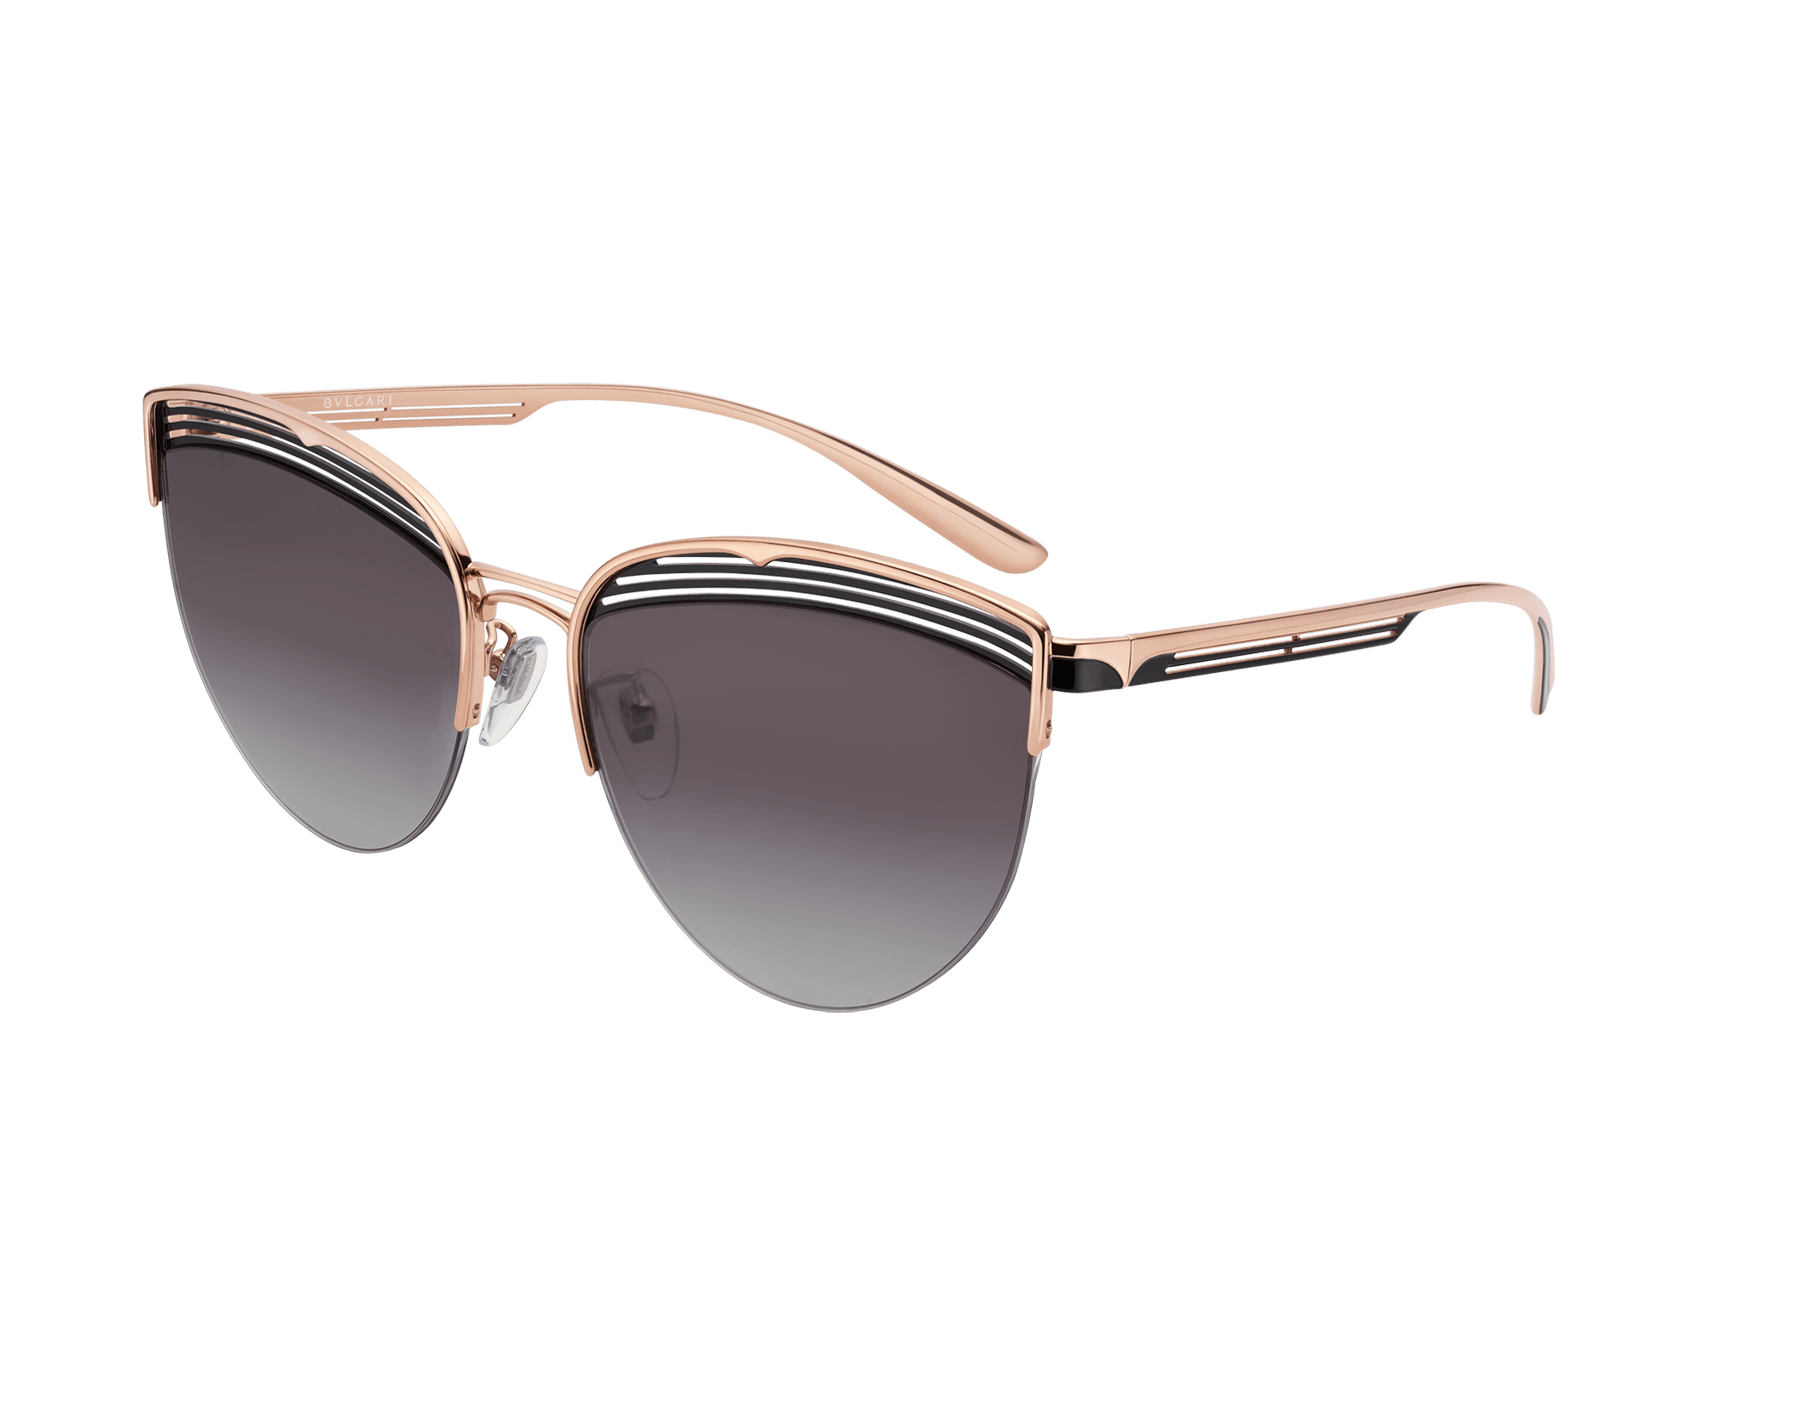 Bvlgari B.zero1 B.purevibes semi-rimless cat-eye metal sunglasses. 903712 image 1